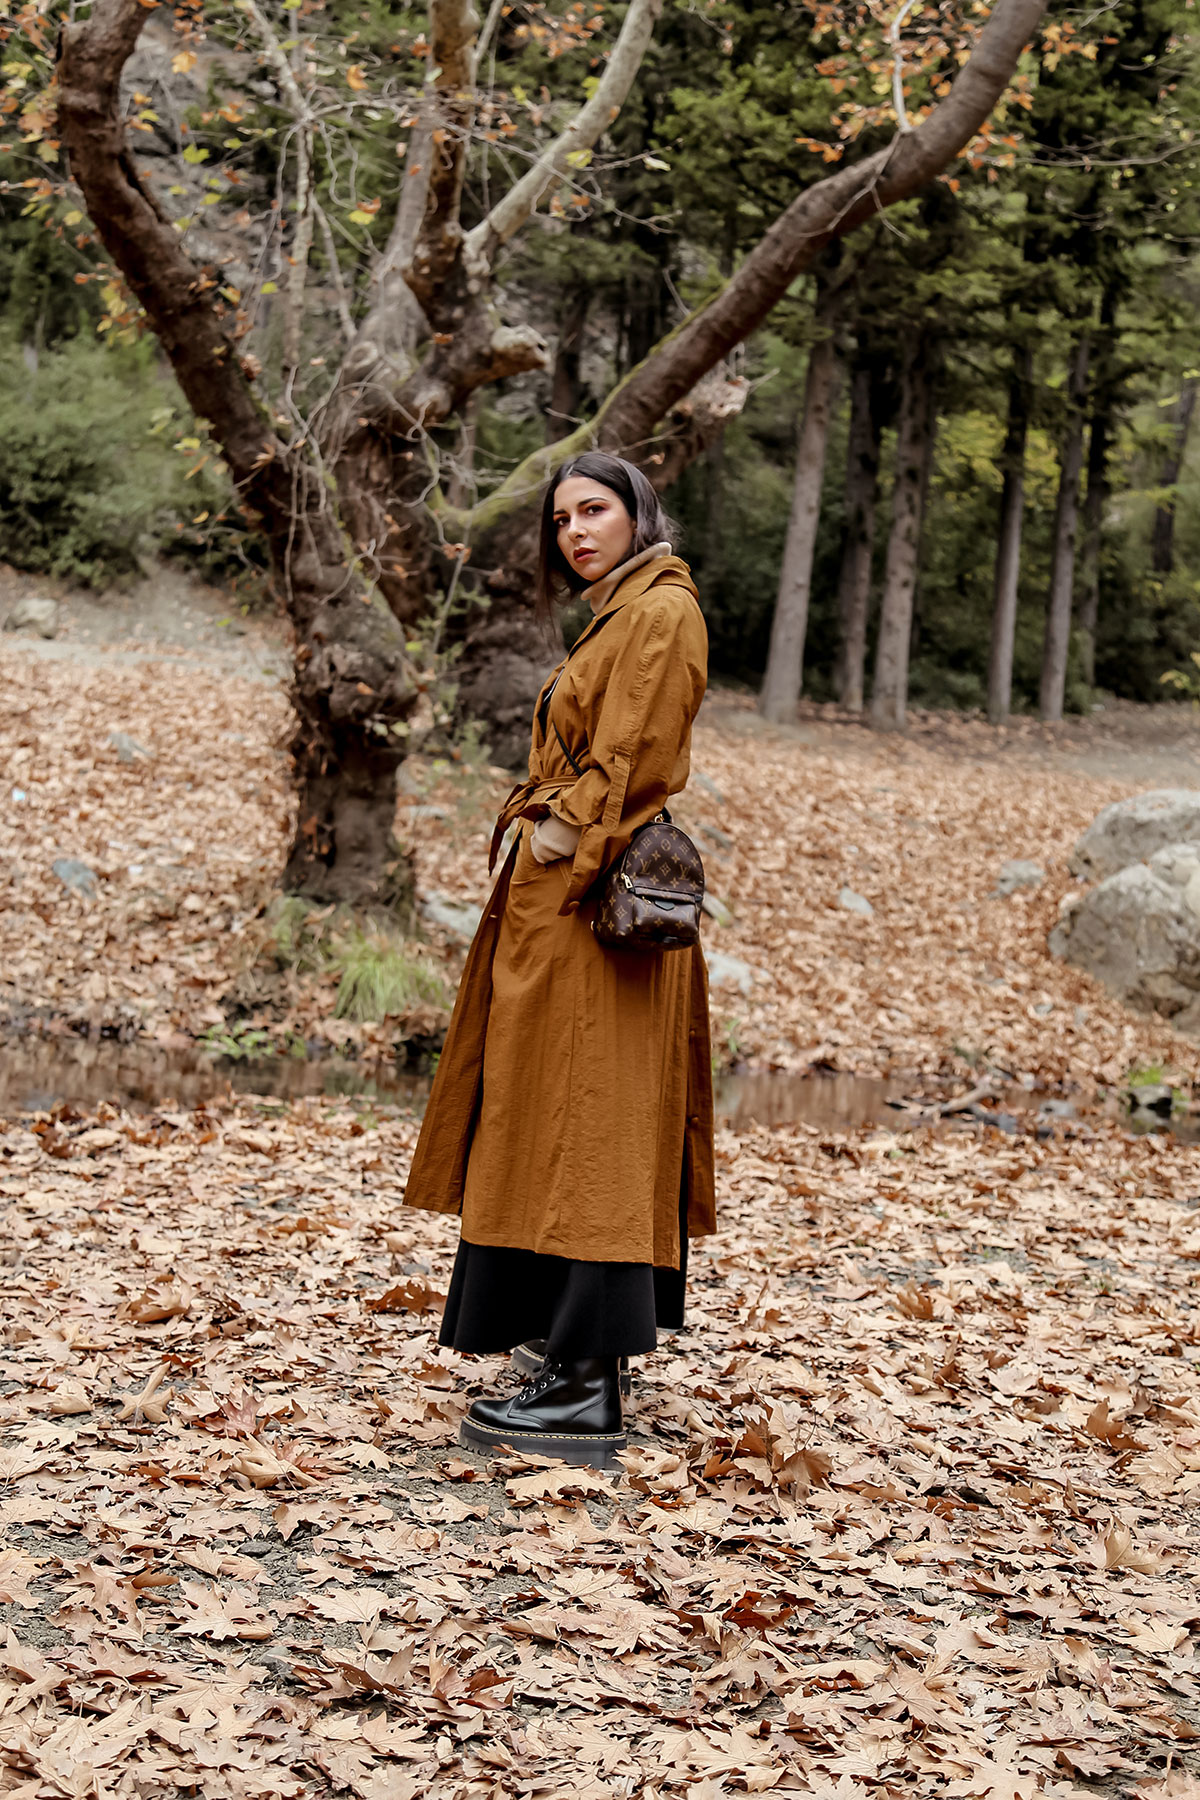 favourite fall wardrobe staples by Stella Asteria - wearing turtleneck sweater with knit skirt and Dr Martens boots, vintage trench coat